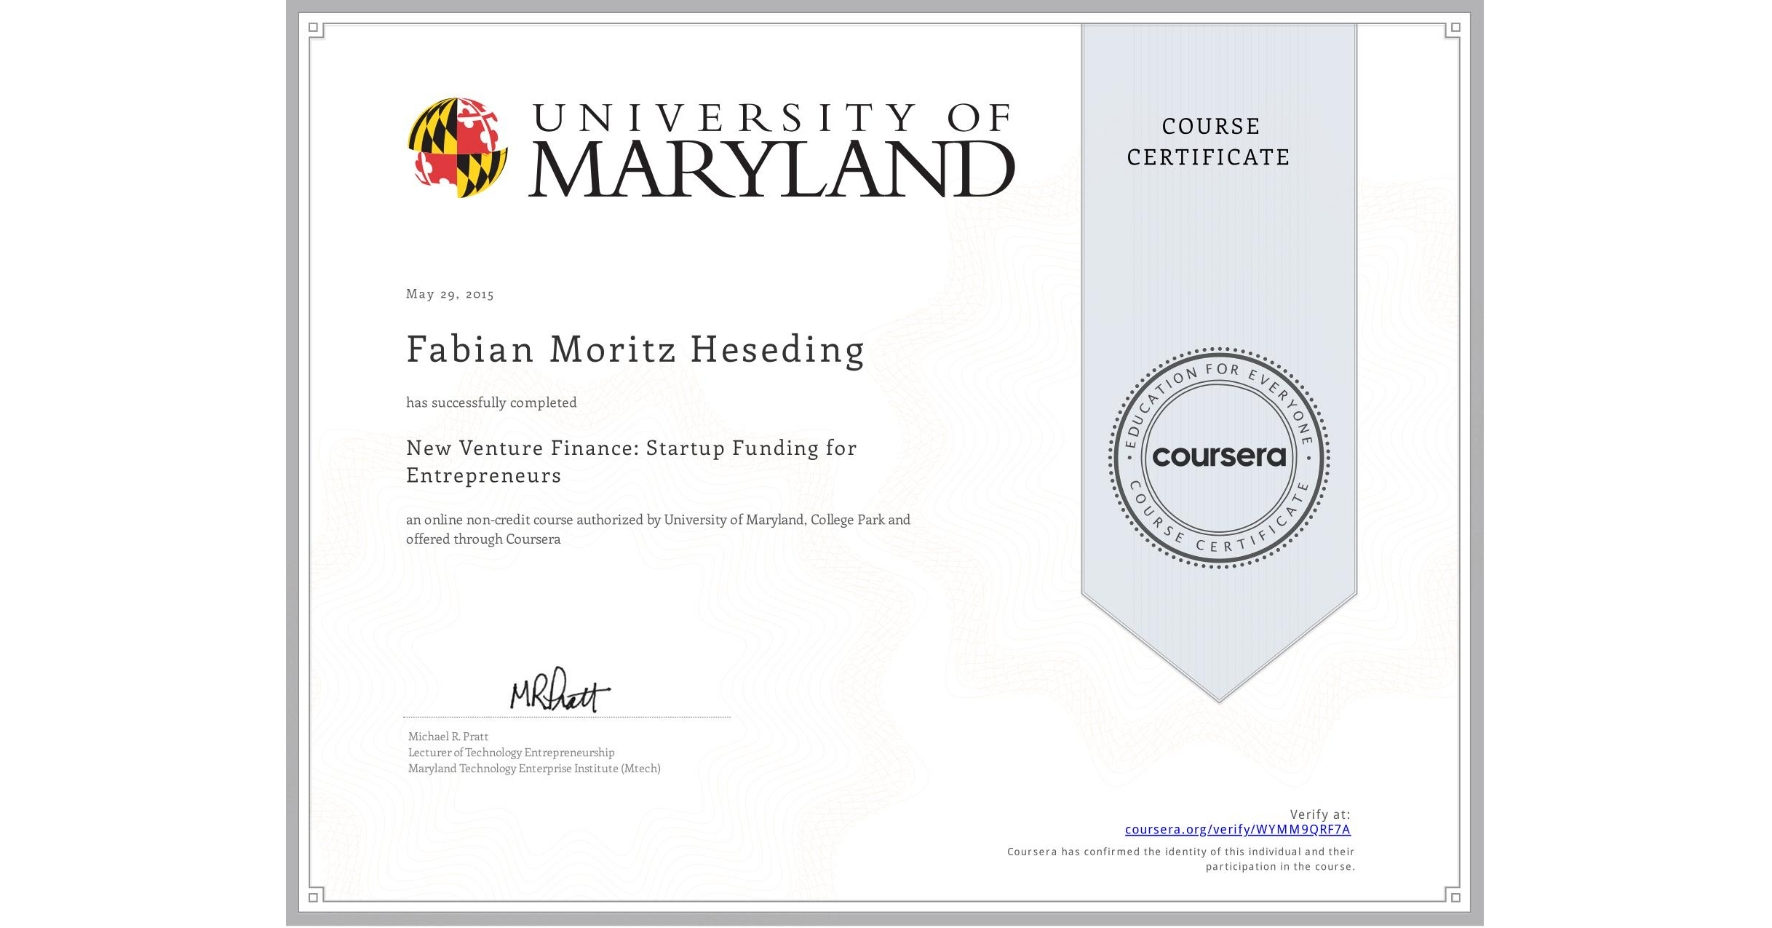 View certificate for Fabian Moritz Heseding, New Venture Finance: Startup Funding for Entrepreneurs, an online non-credit course authorized by University of Maryland, College Park and offered through Coursera